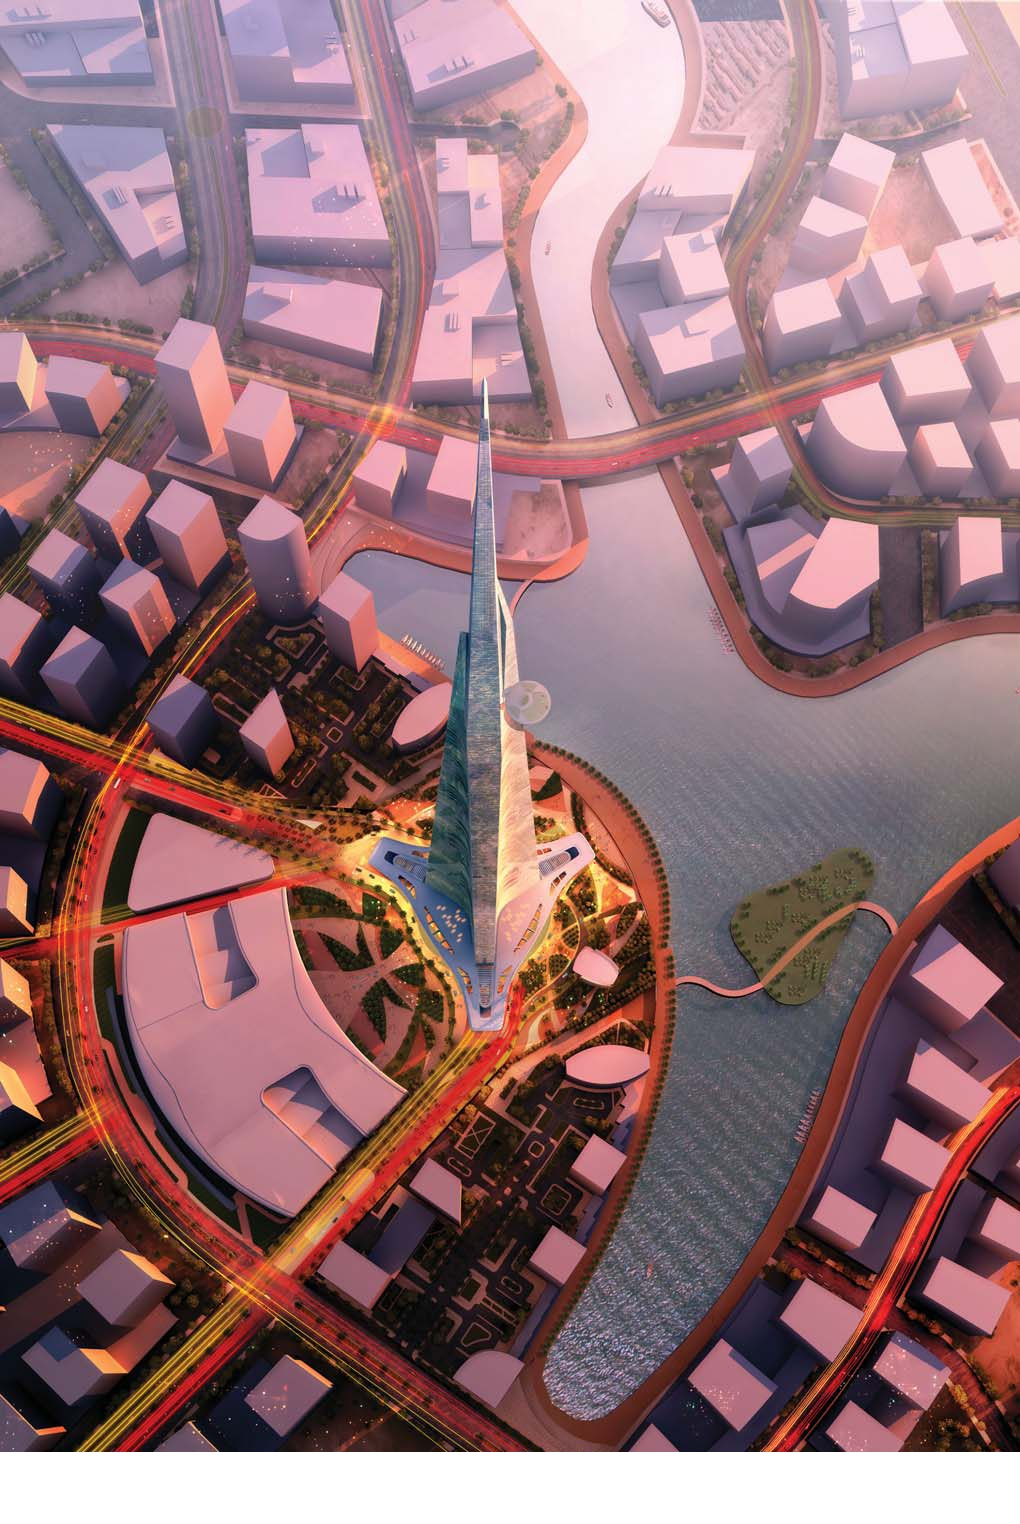 kingdom_tower_2